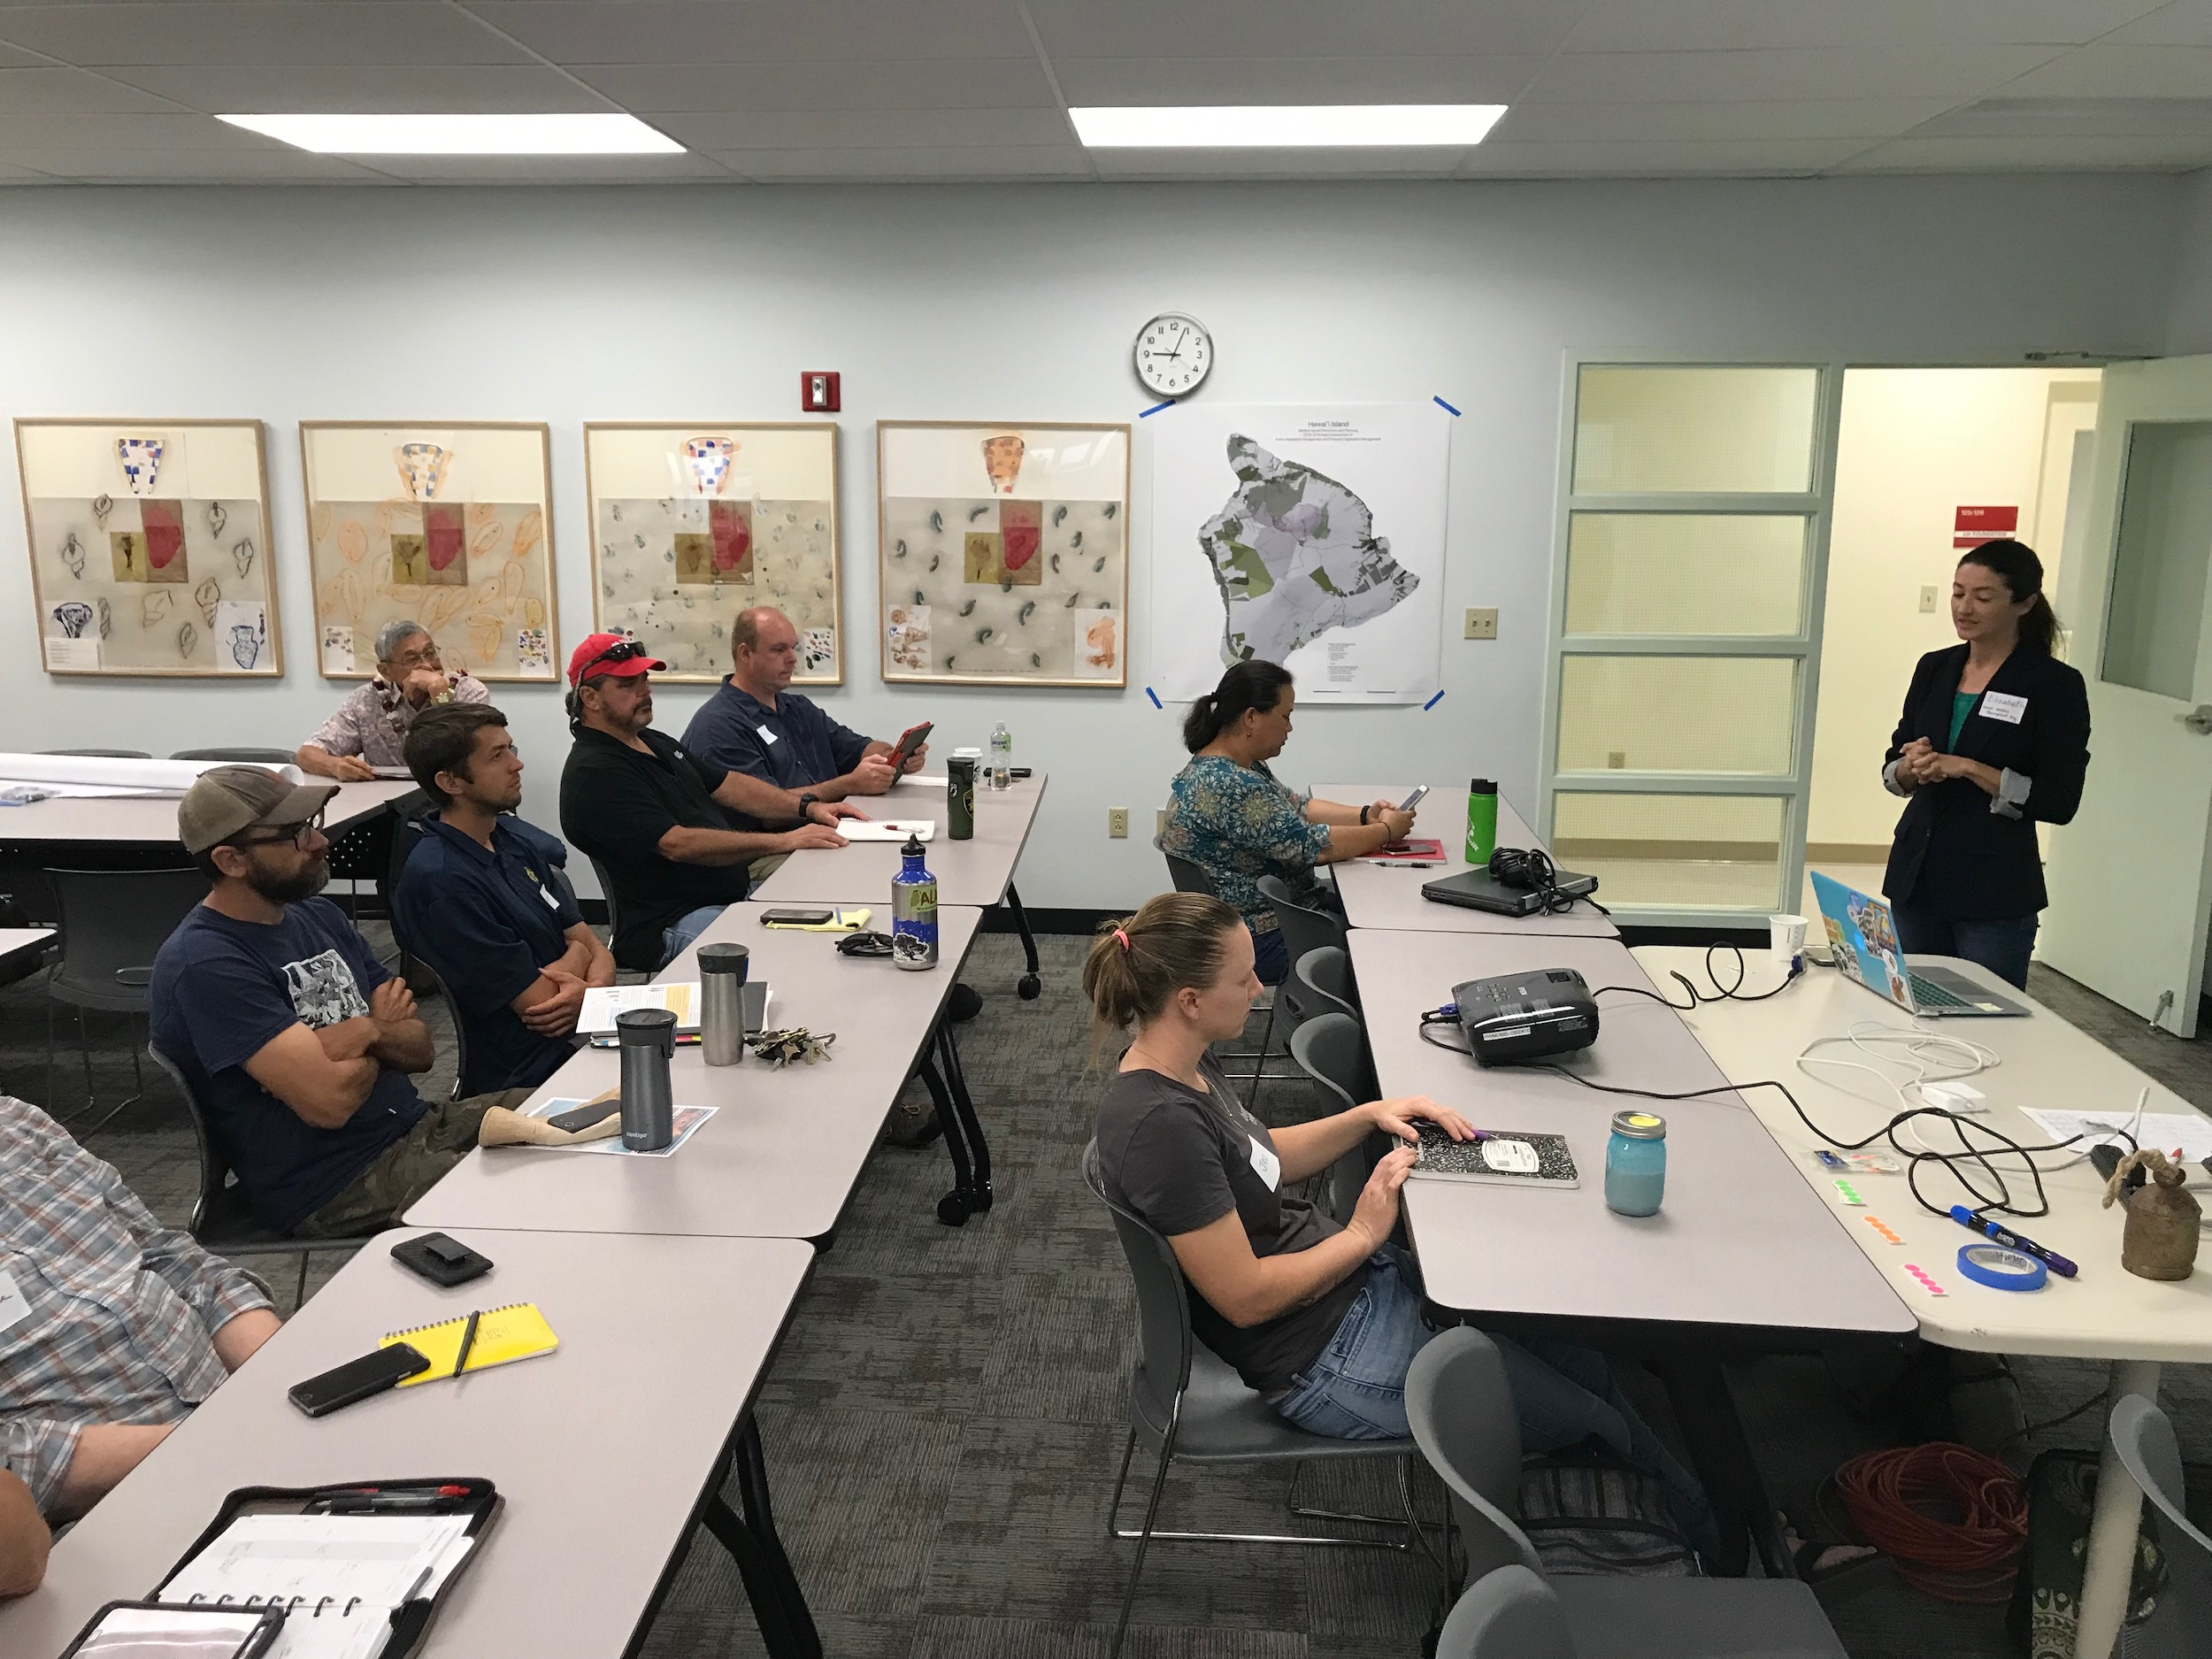 Hawaii Island Hilo Vegetative Fuels Management Collaborative Action Planning Workshop_2_22_2019_1.jpg